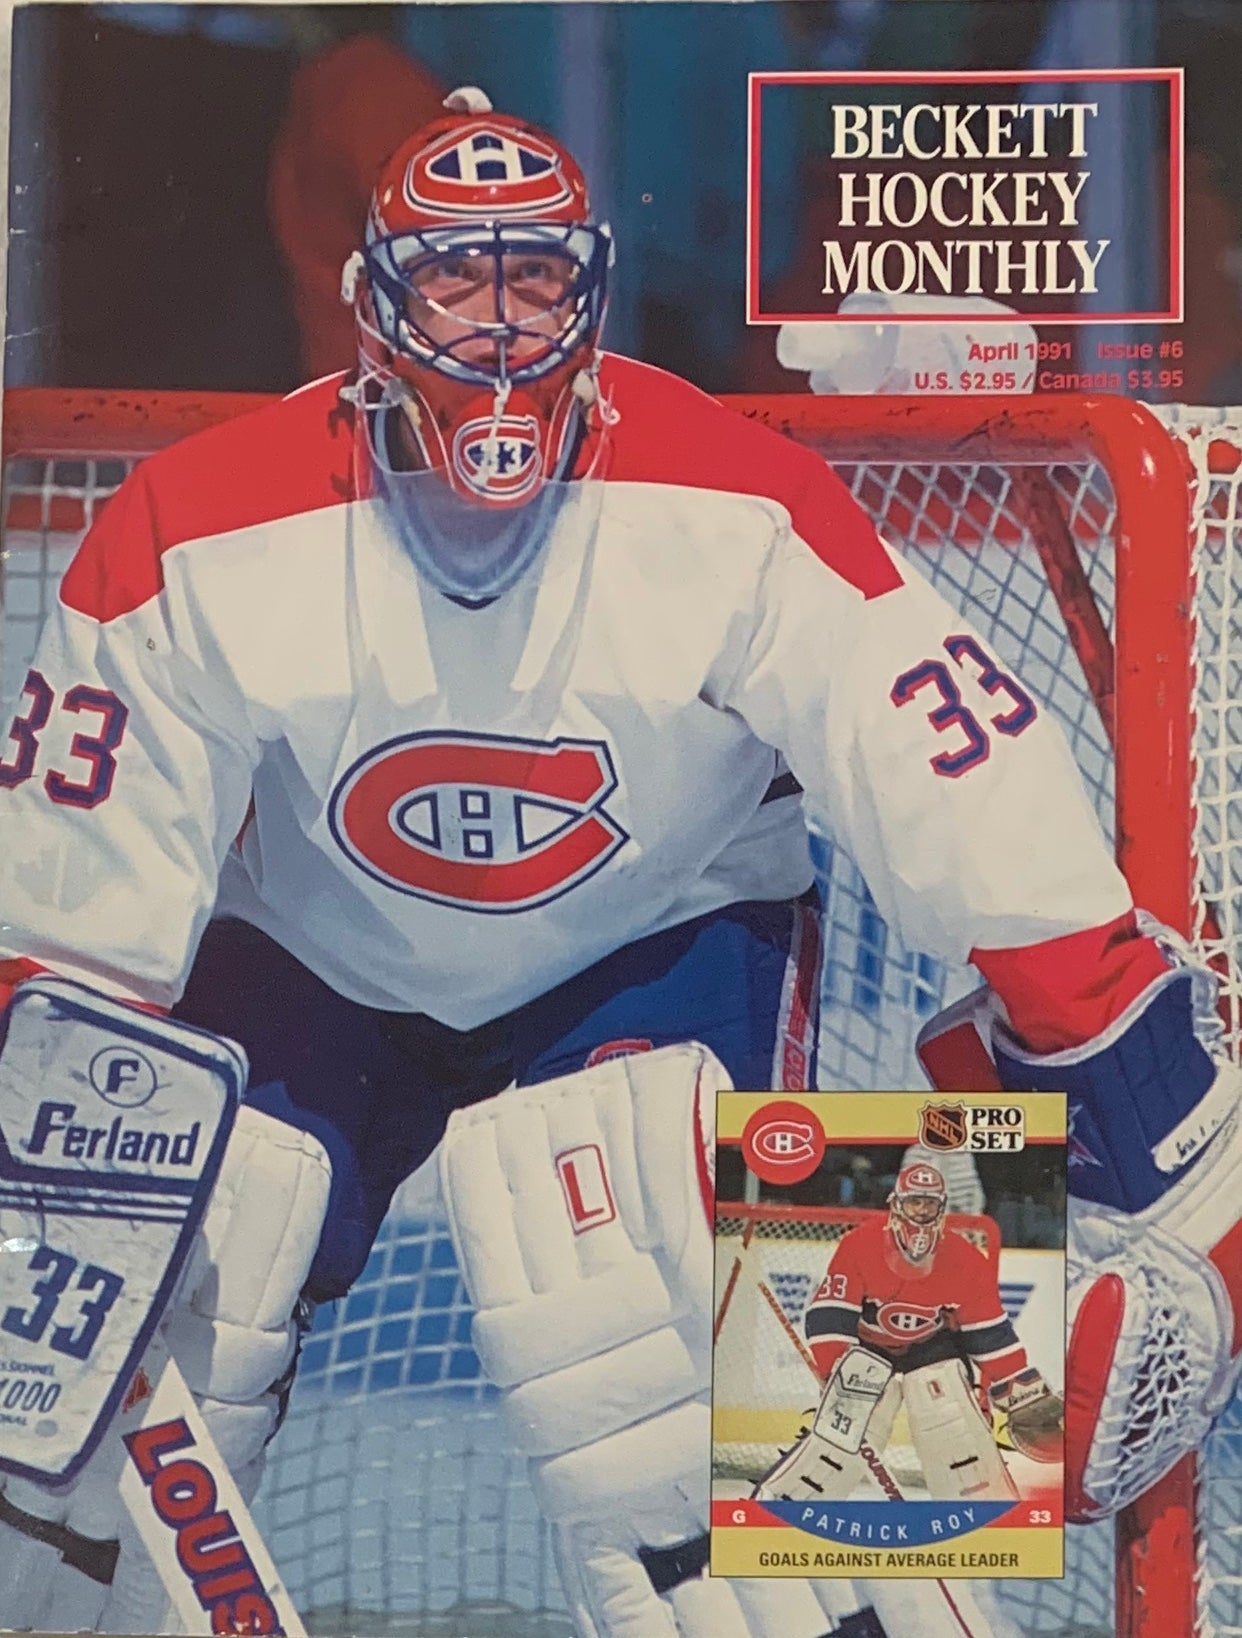 Patrick Roy Beckett Hockey Monthly April 1991 Issue #6 - Latitude Sports Marketing